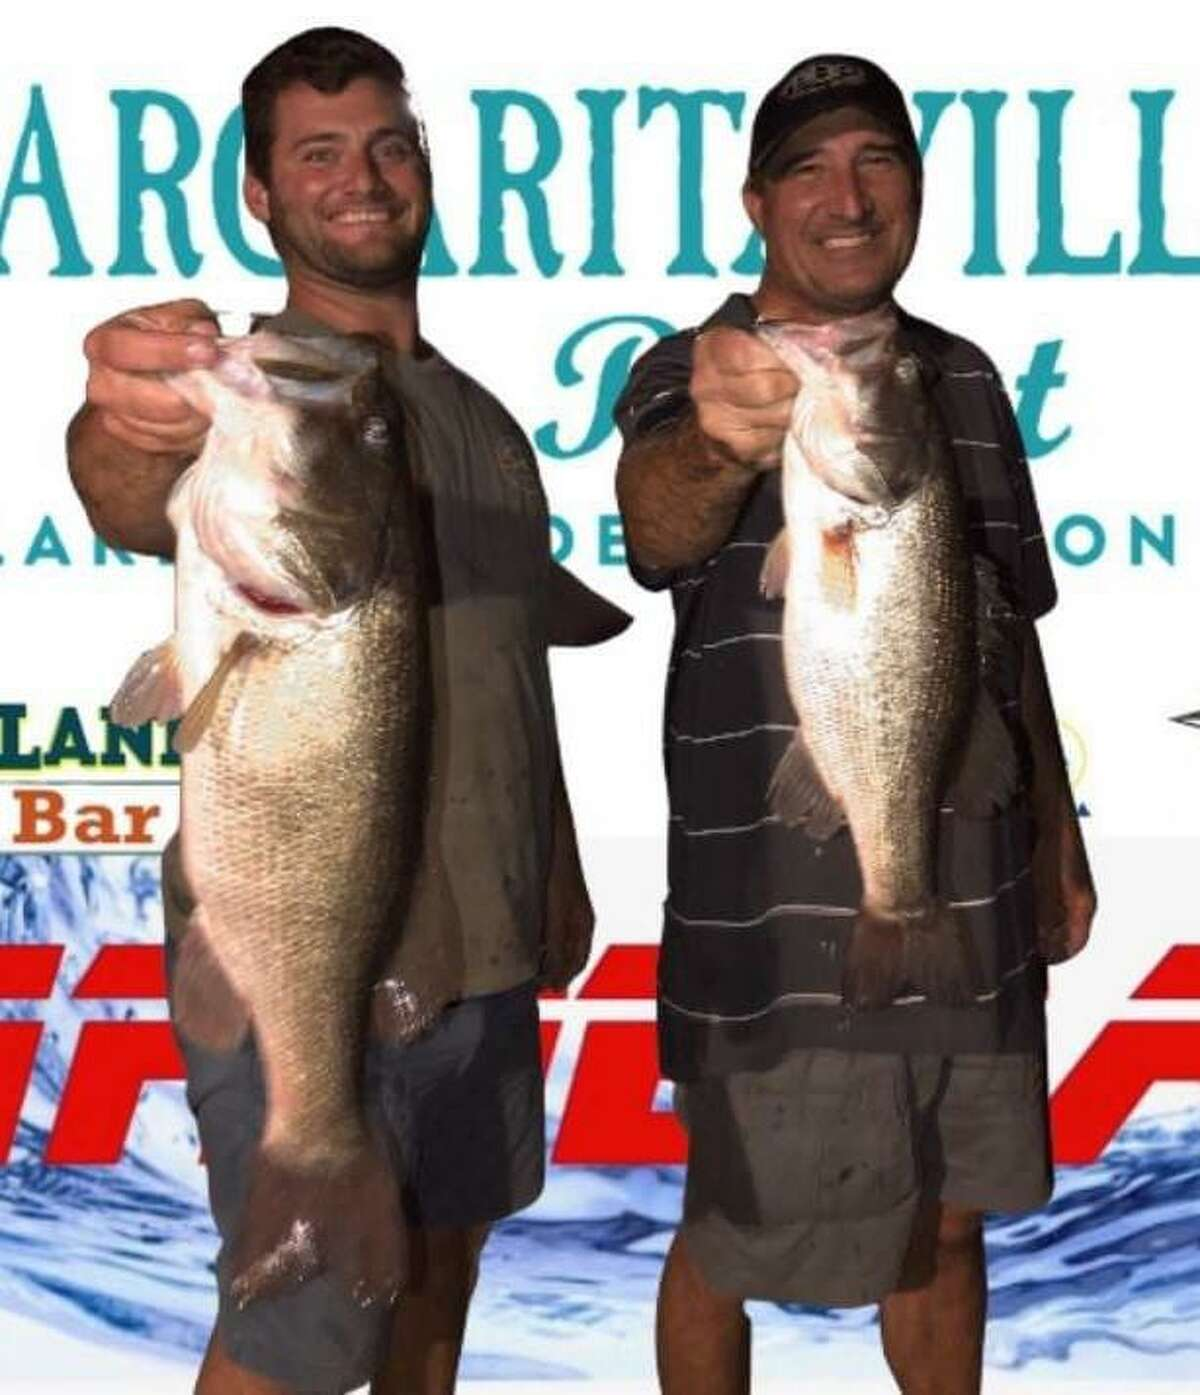 Rober Baney and DJ Strother came in first place in the CONROEBASS Tuesday Tournament with a total weight of 9.75 pounds.